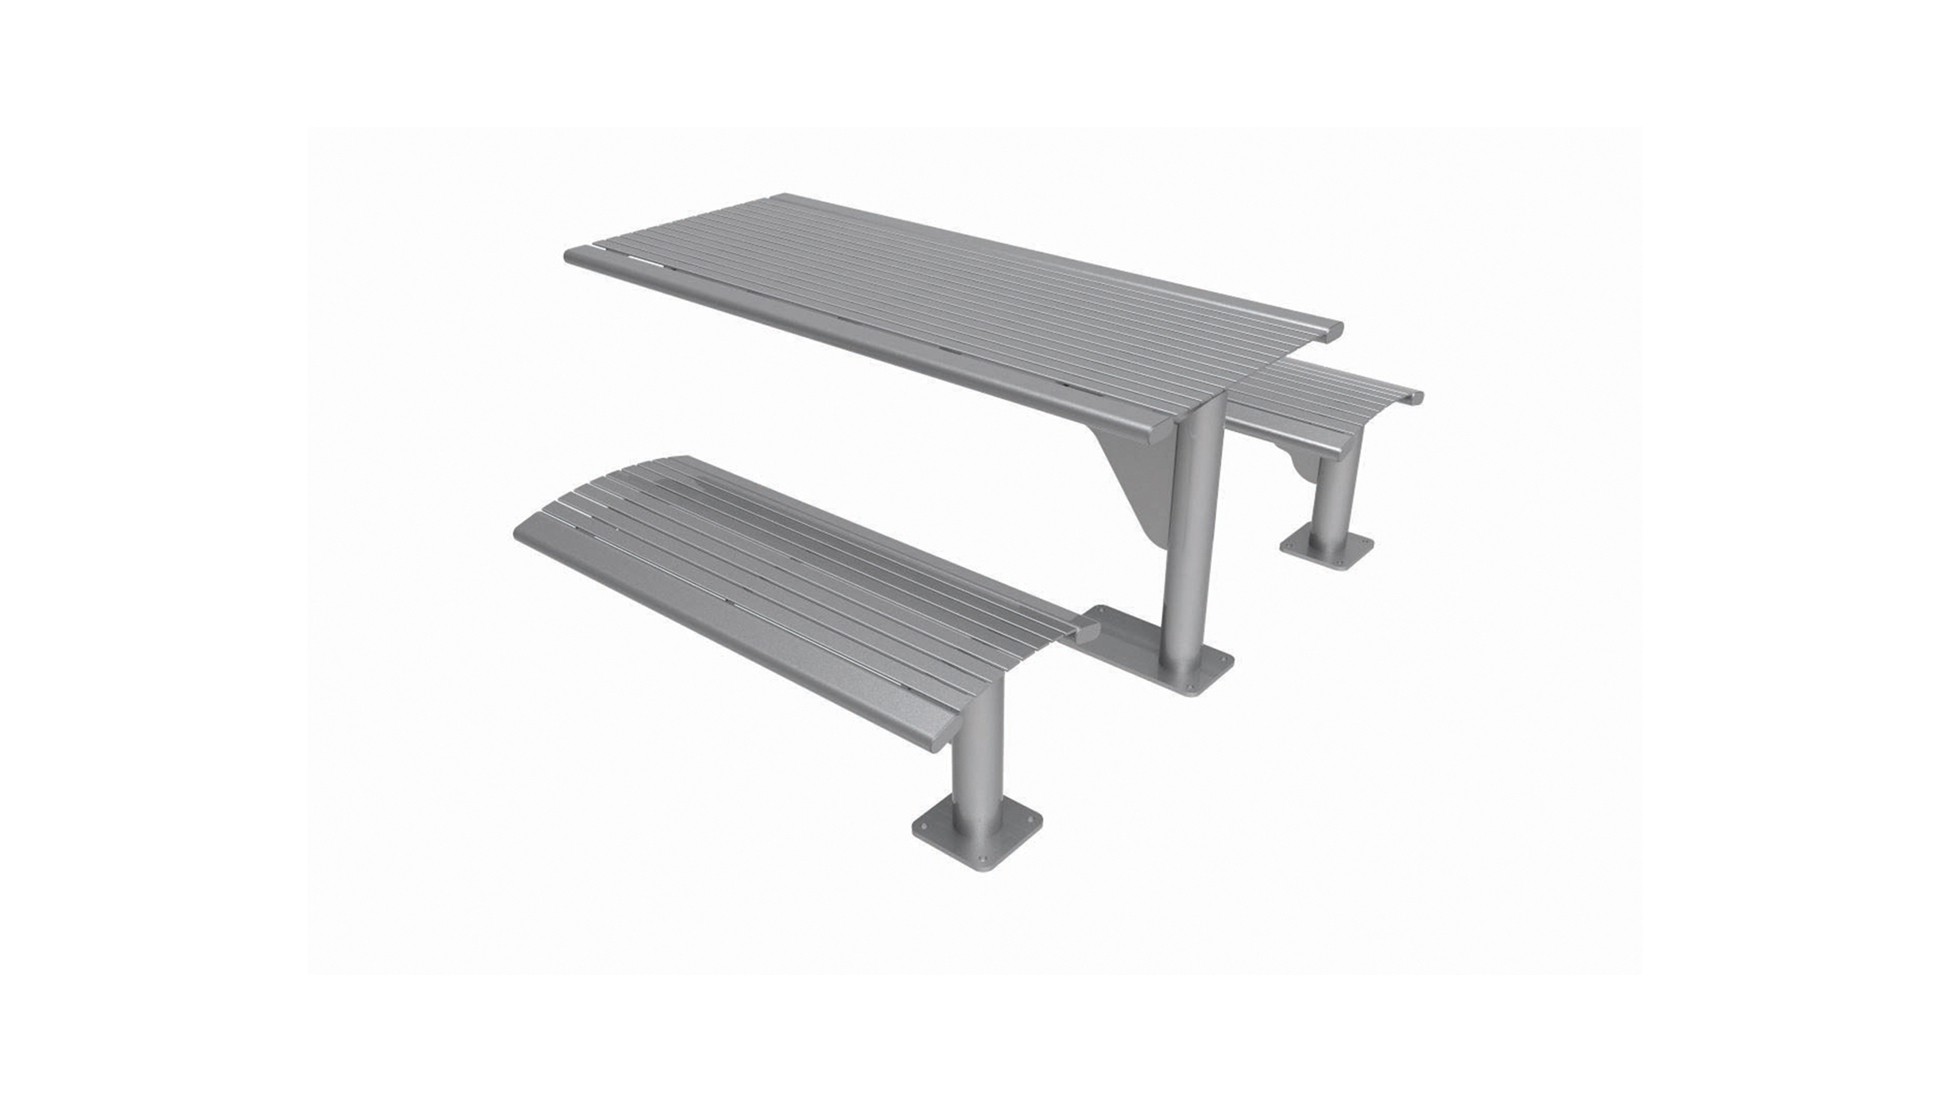 Series 1600 Table with Seats, Steel Slats